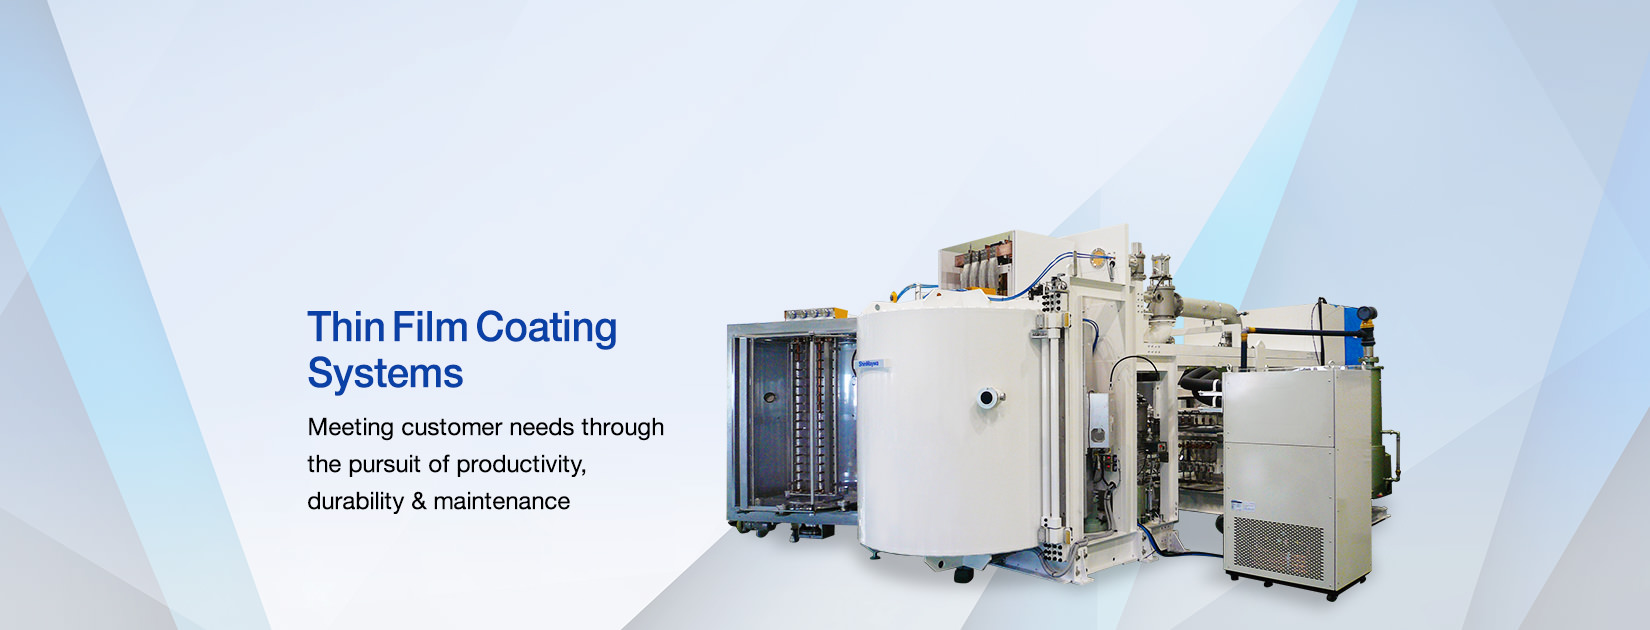 Thin Film Coating Systems Meeting customer needs through the pursuit of productivity, durability & maintenance